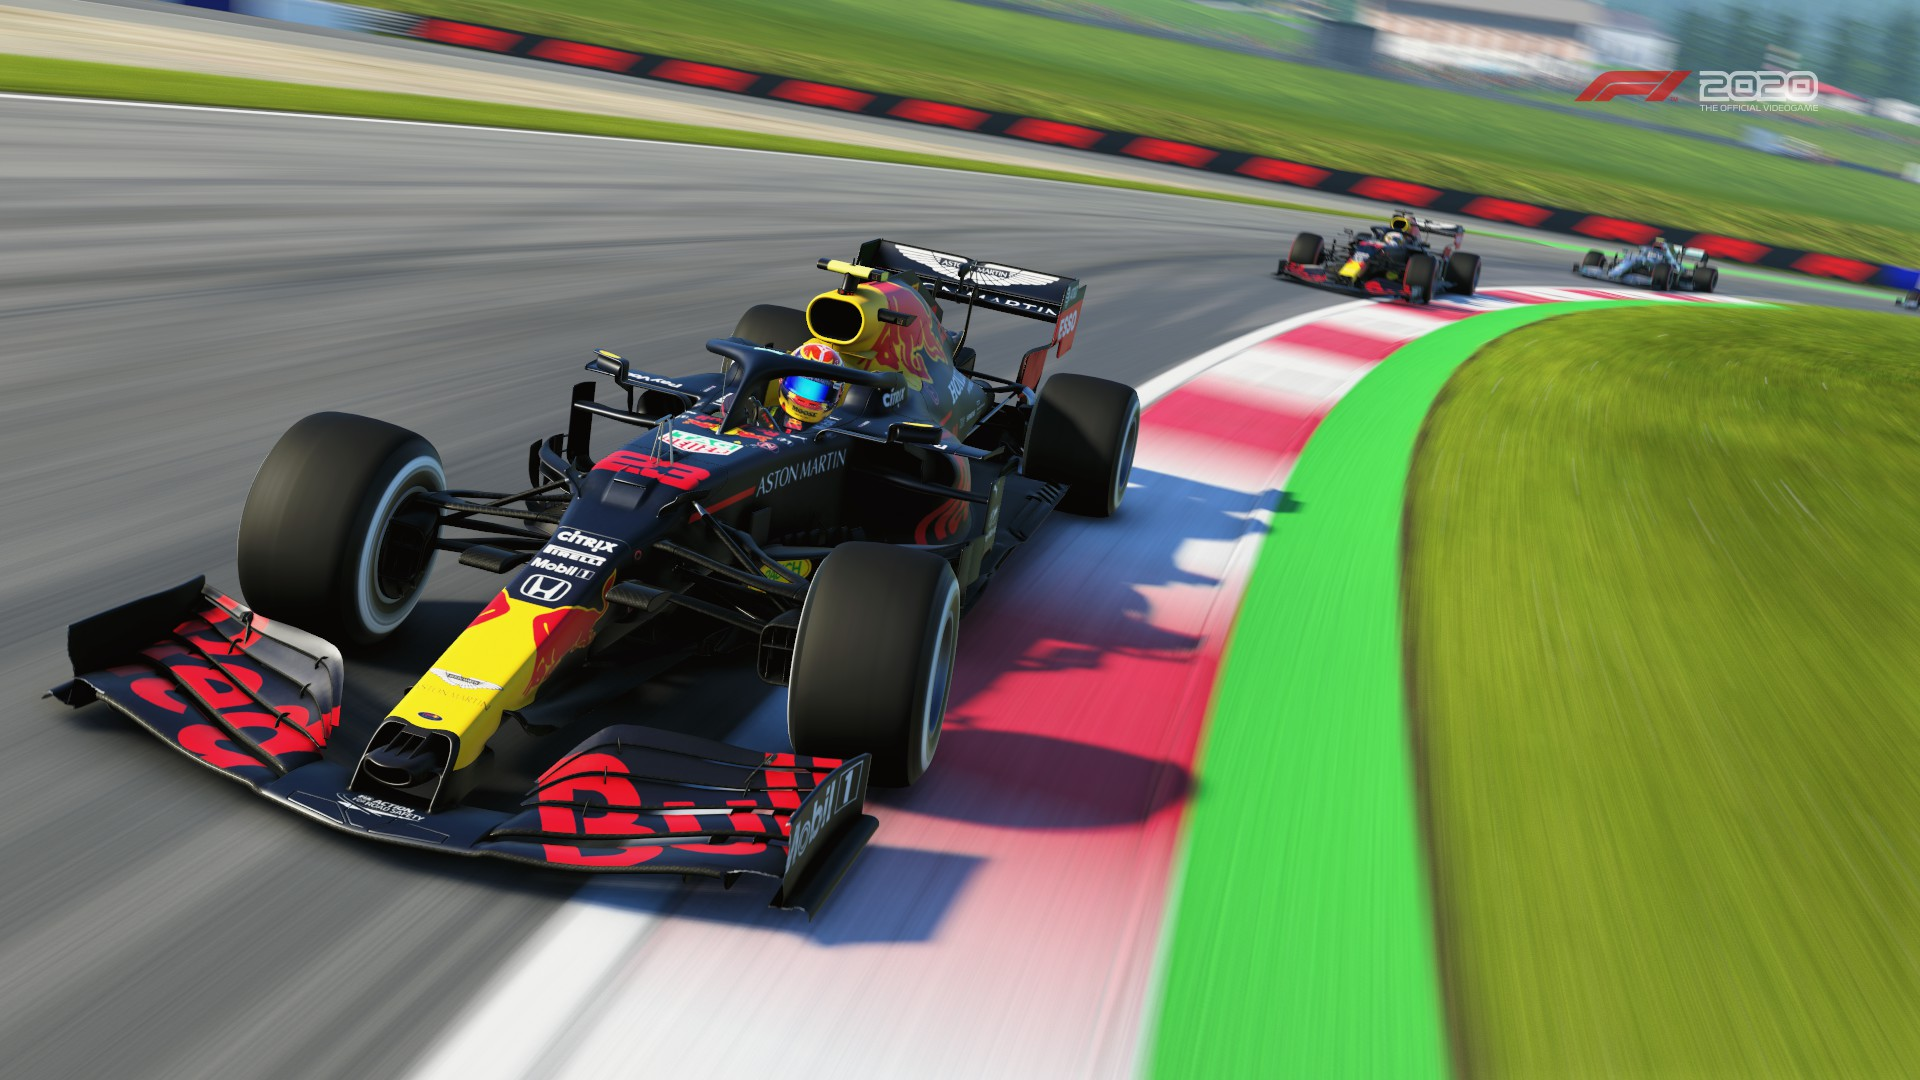 F1 2020 : Prolific cheater banned by Codemasters